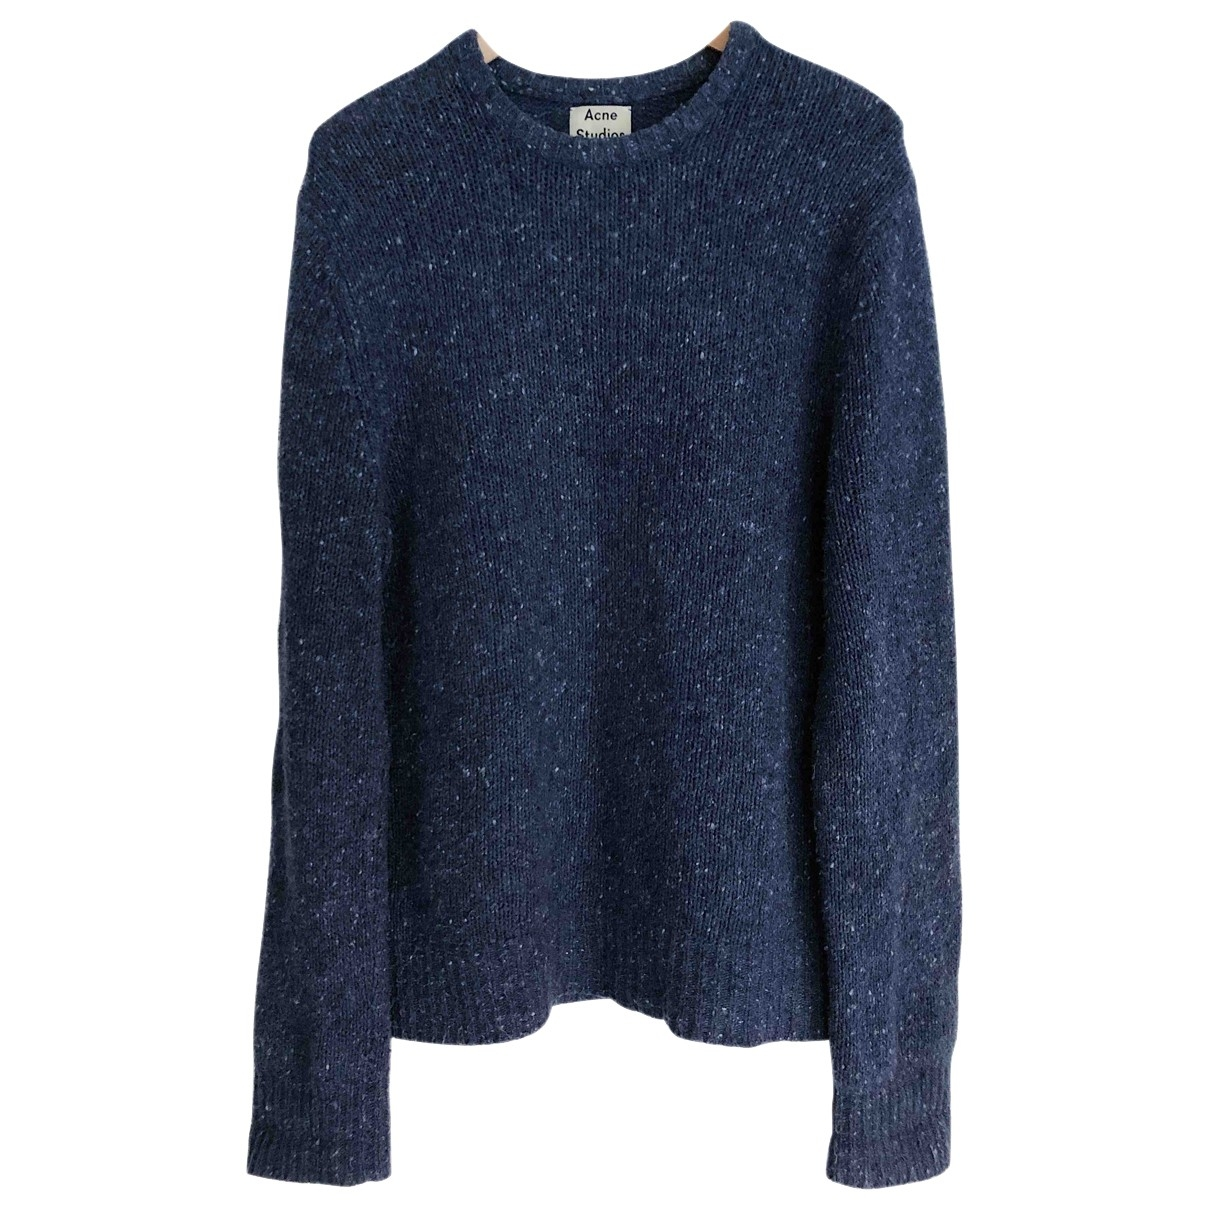 Acne Studios \N Blue Wool Knitwear & Sweatshirts for Men S International